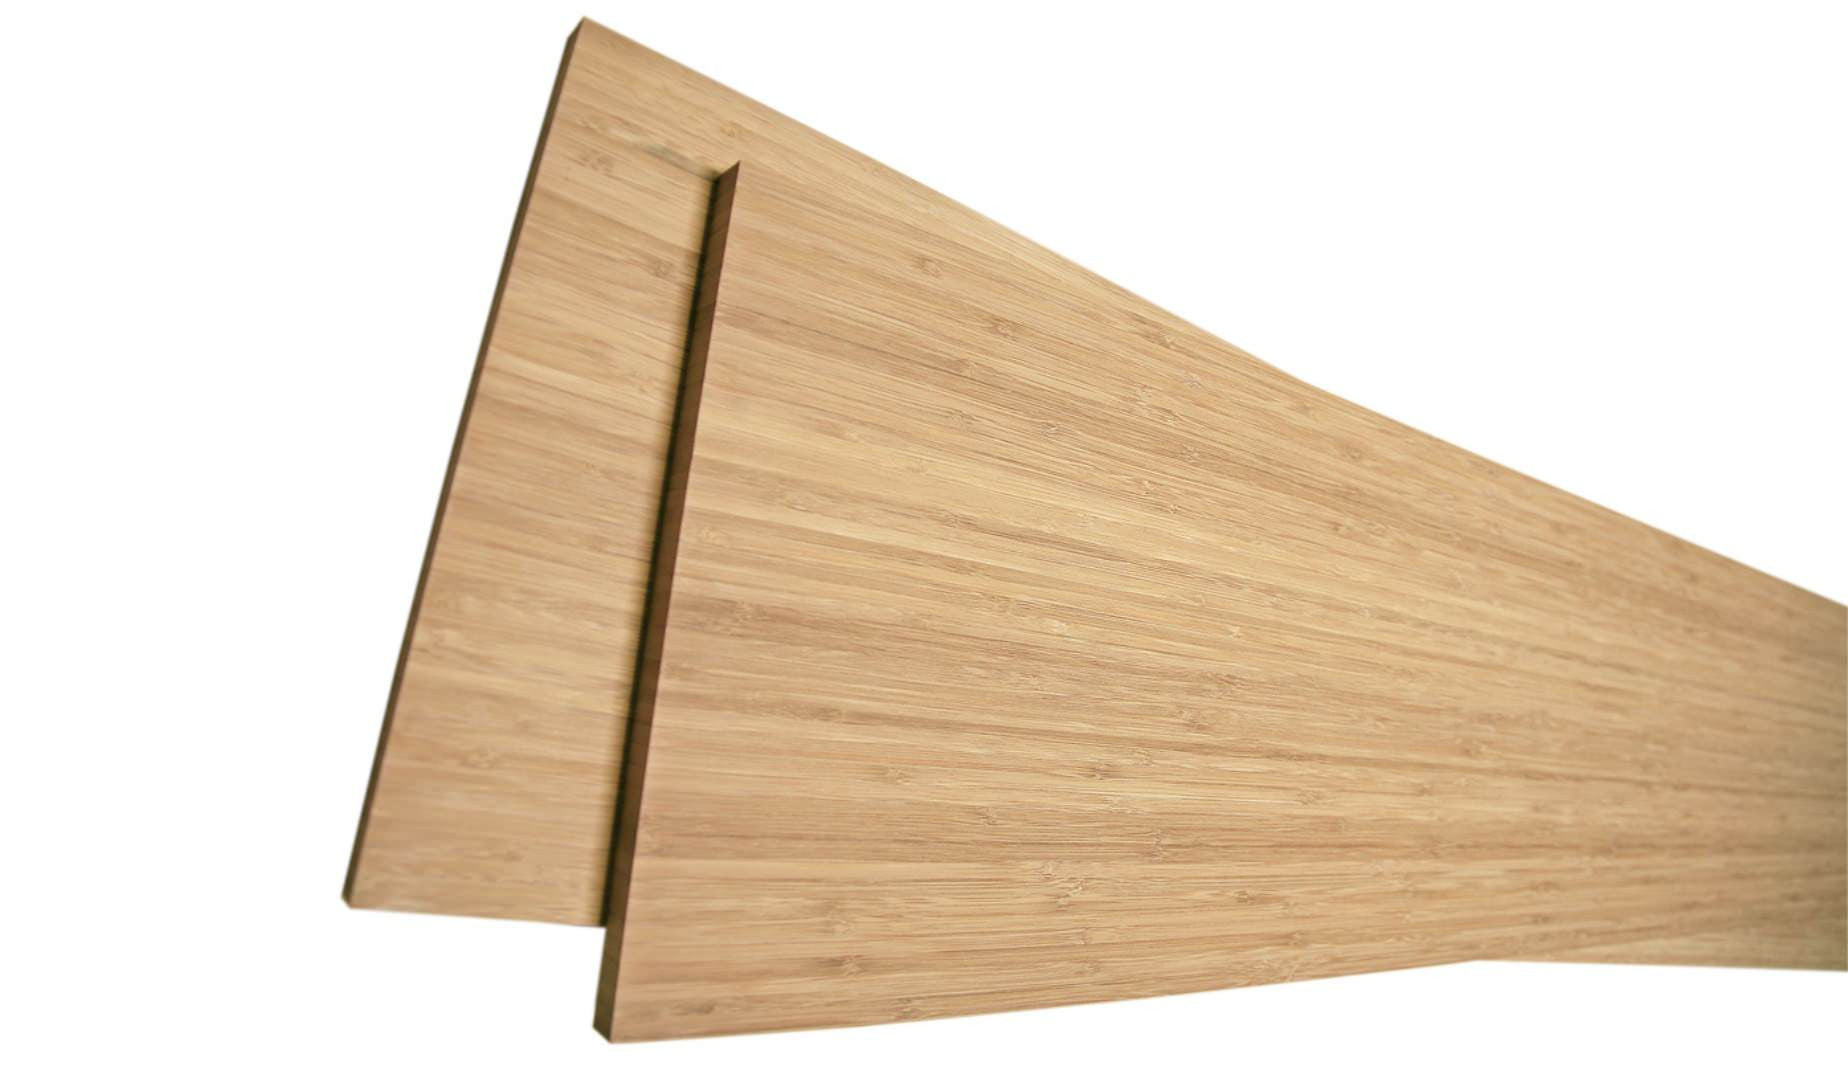 Bamboo sheets used as skateboard building material